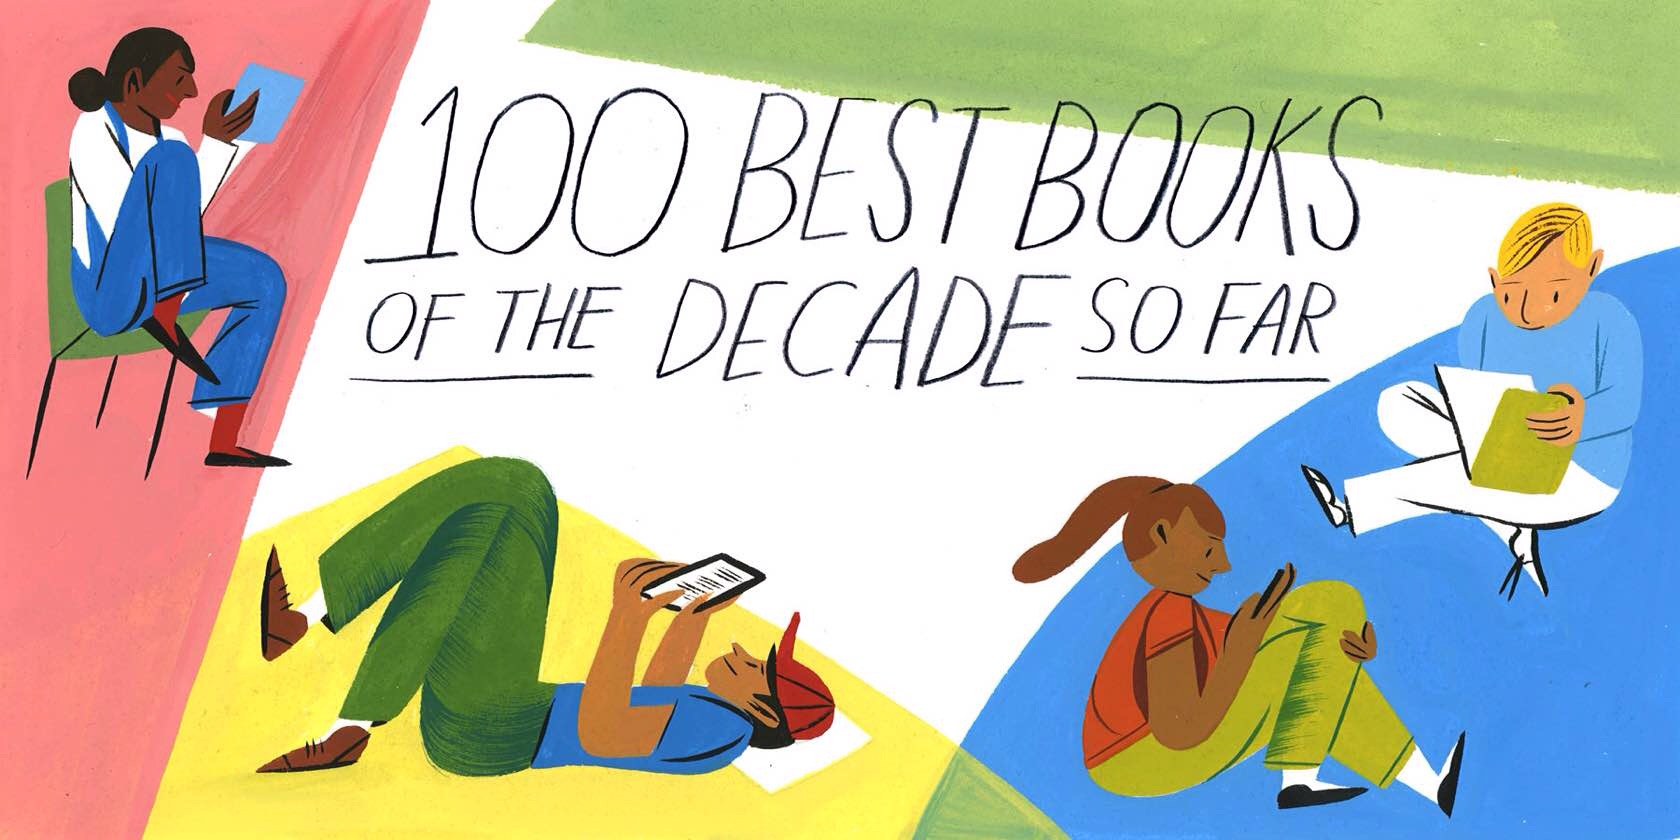 Oyster Review's Top 100 Books of the Decade so Far